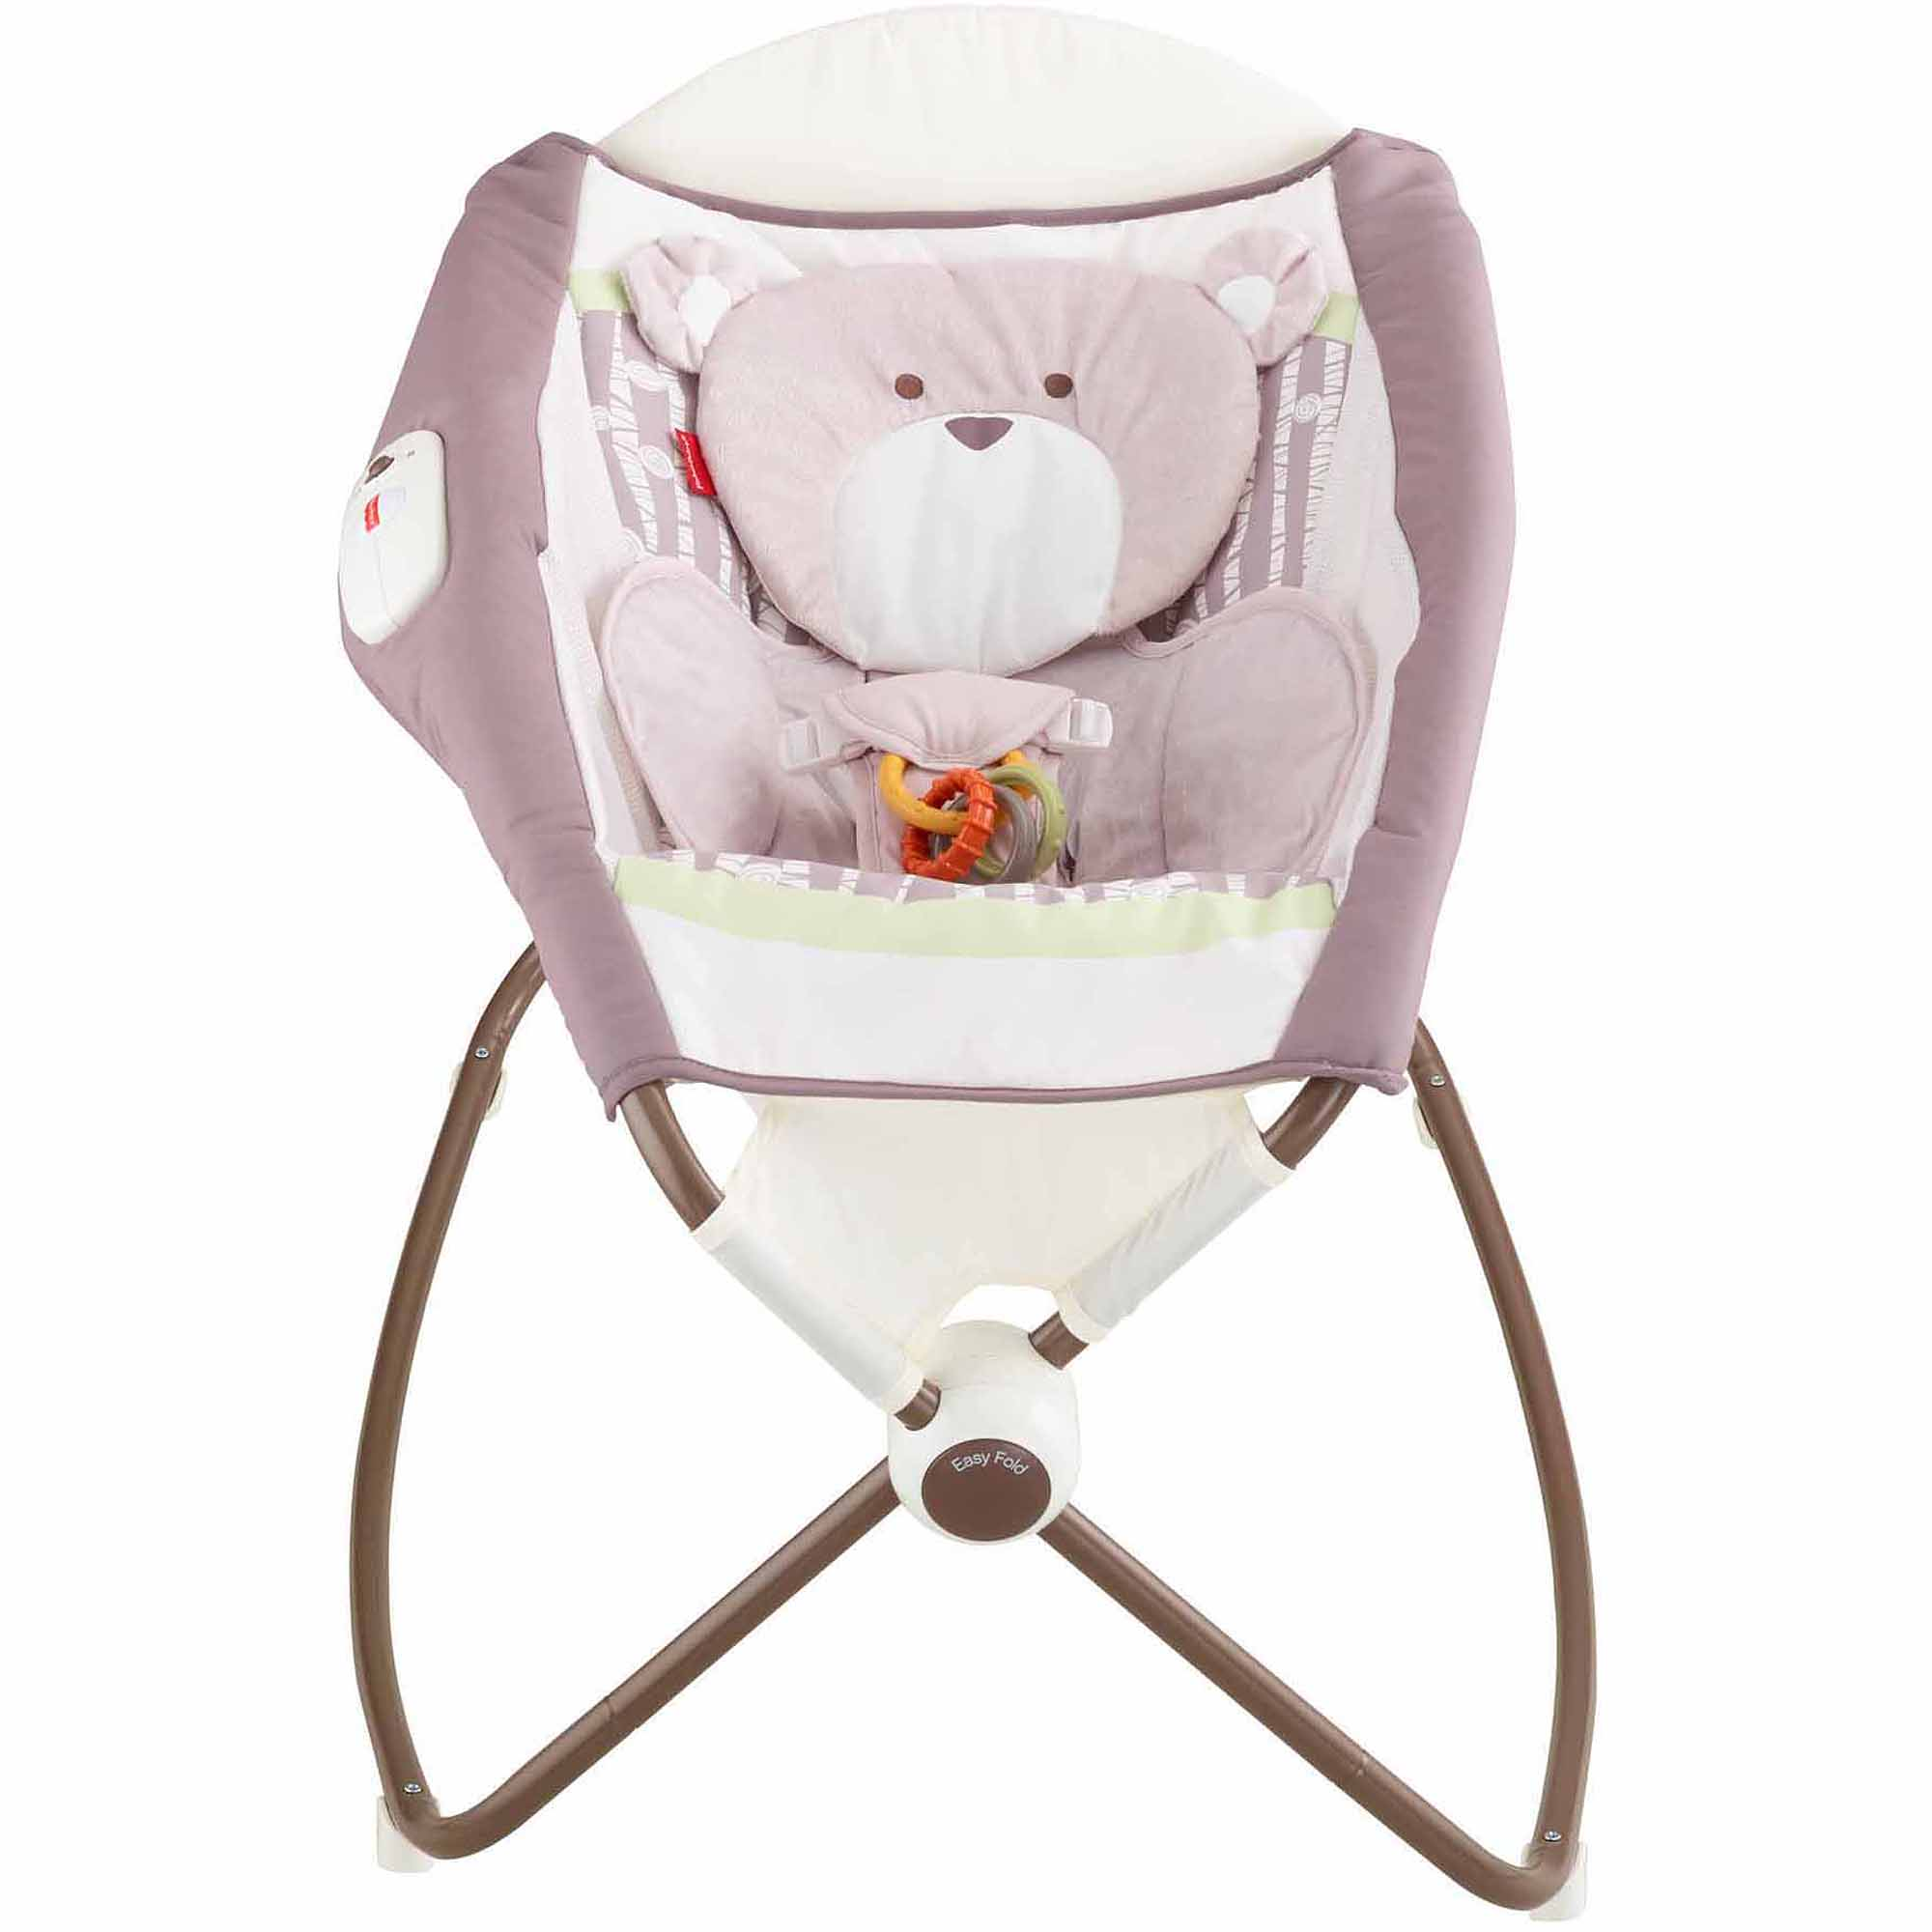 Fisher-Price My Little Snugabear Forest Edition Deluxe Newborn Rock 'n Play Sleeper